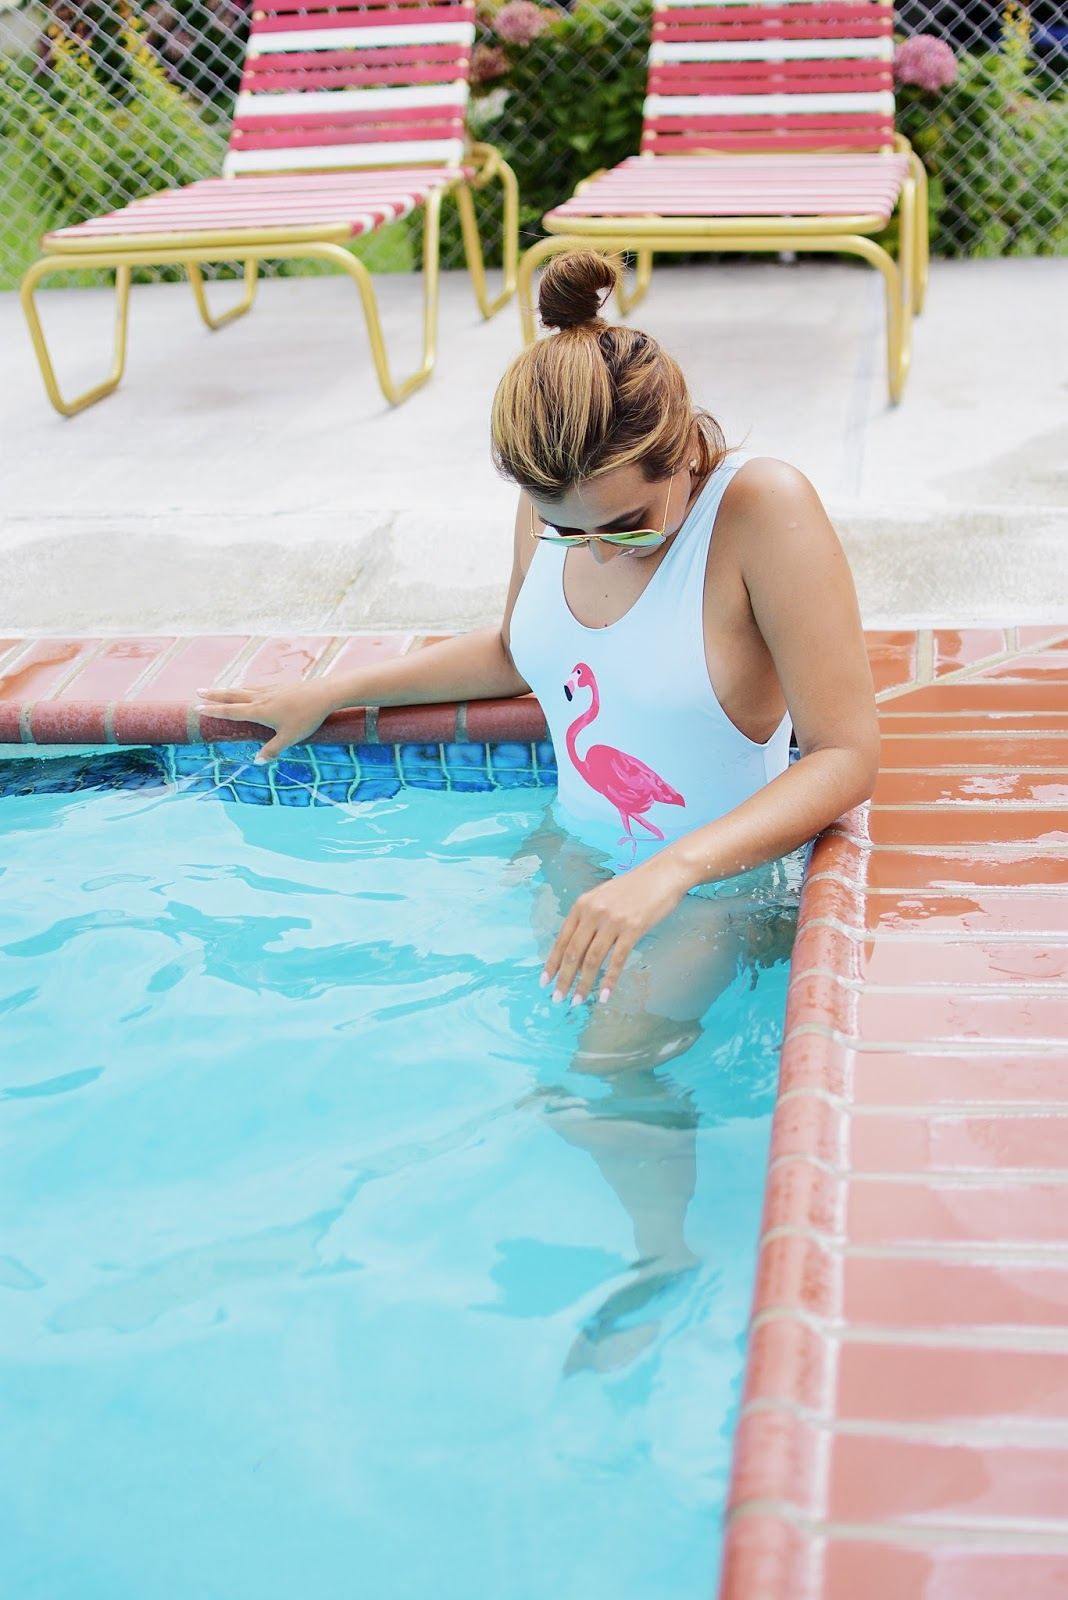 Flamingo Print Tank Swimsuit-look of the day-mariestilo-mariestilotravels-travelblogger-moda-oceancity-vacaciones